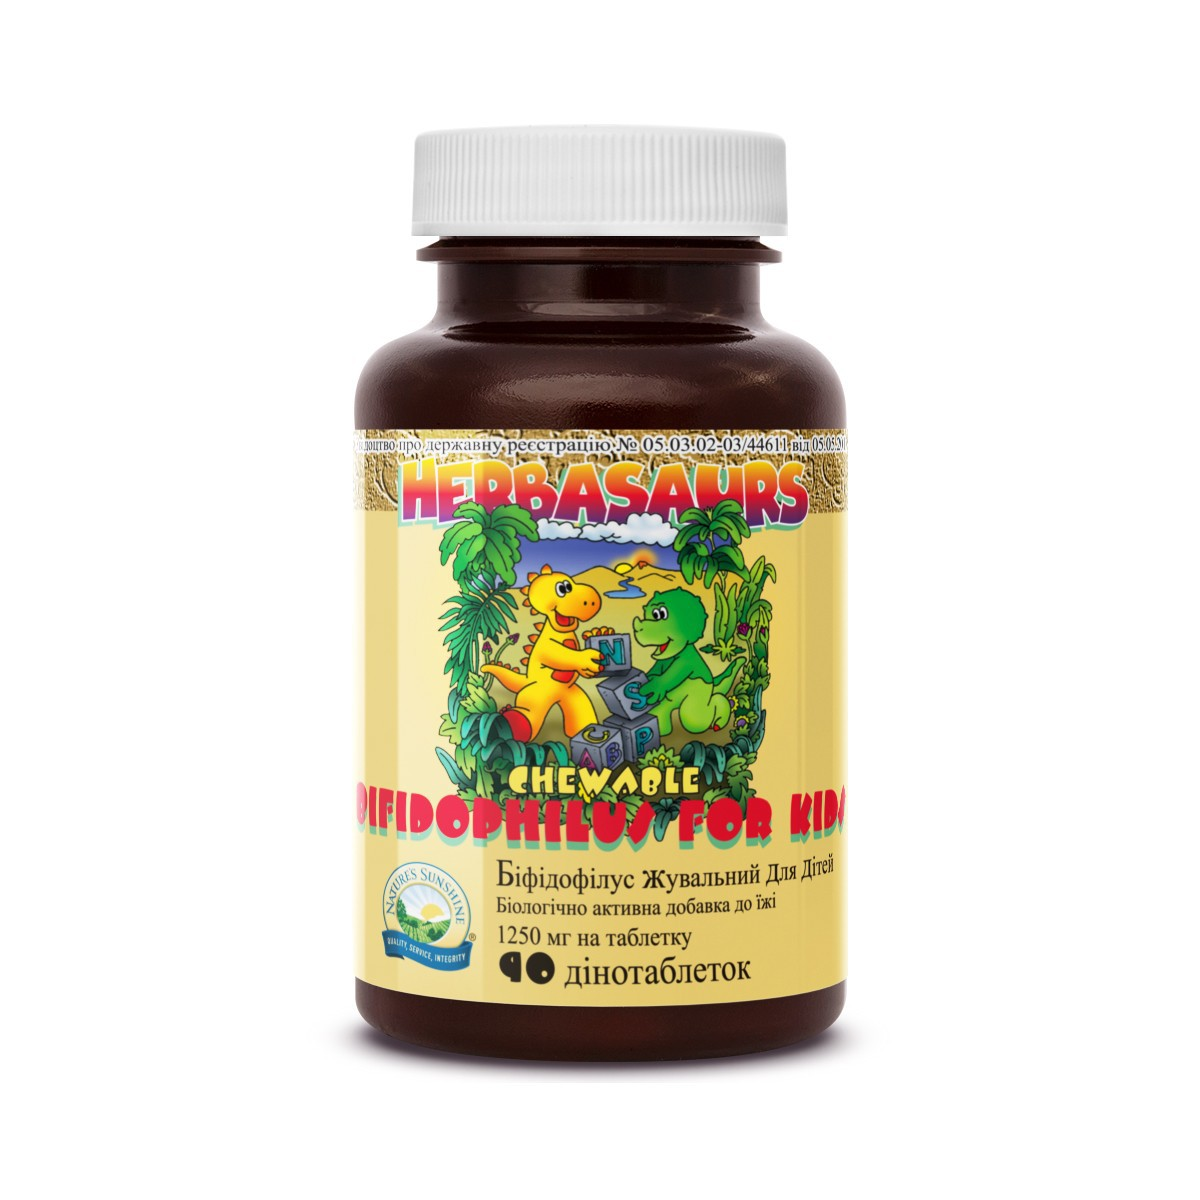 Bifidophilus Chewable for Kids - Herbasaurs